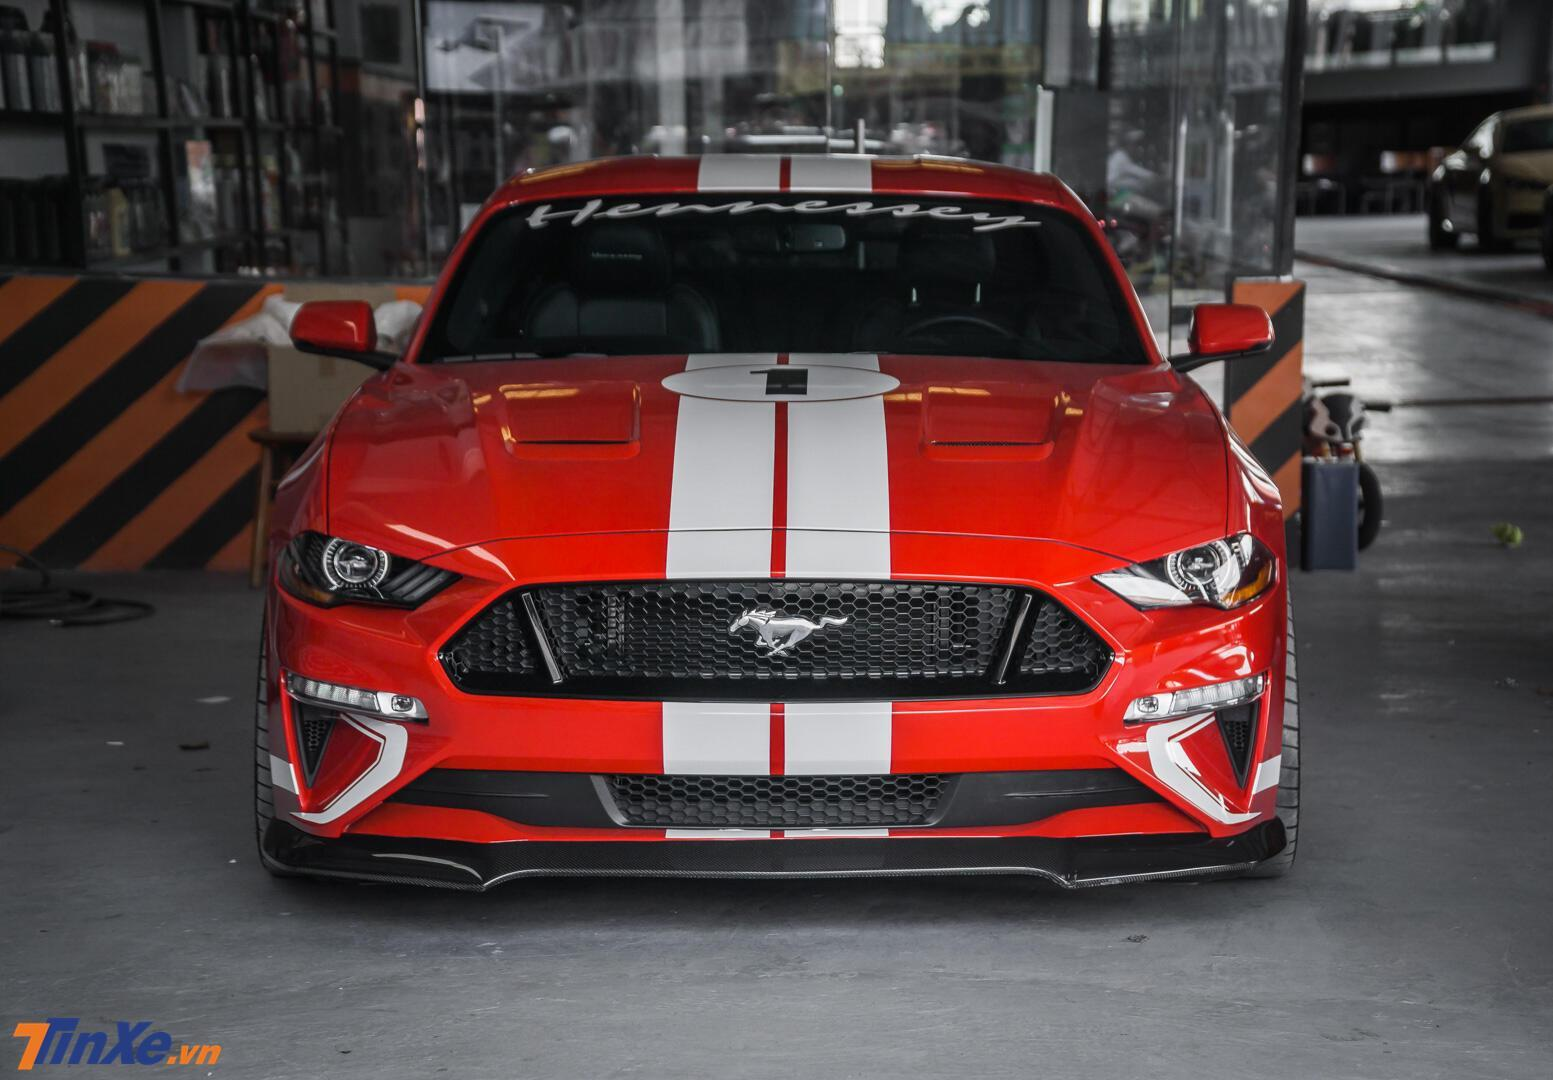 danh-gia-ford-mustang-do-hennessey-doc-nhat-viet-nam-ngua-hoang-day-cong-suat-808-ma-luc-1.jpg